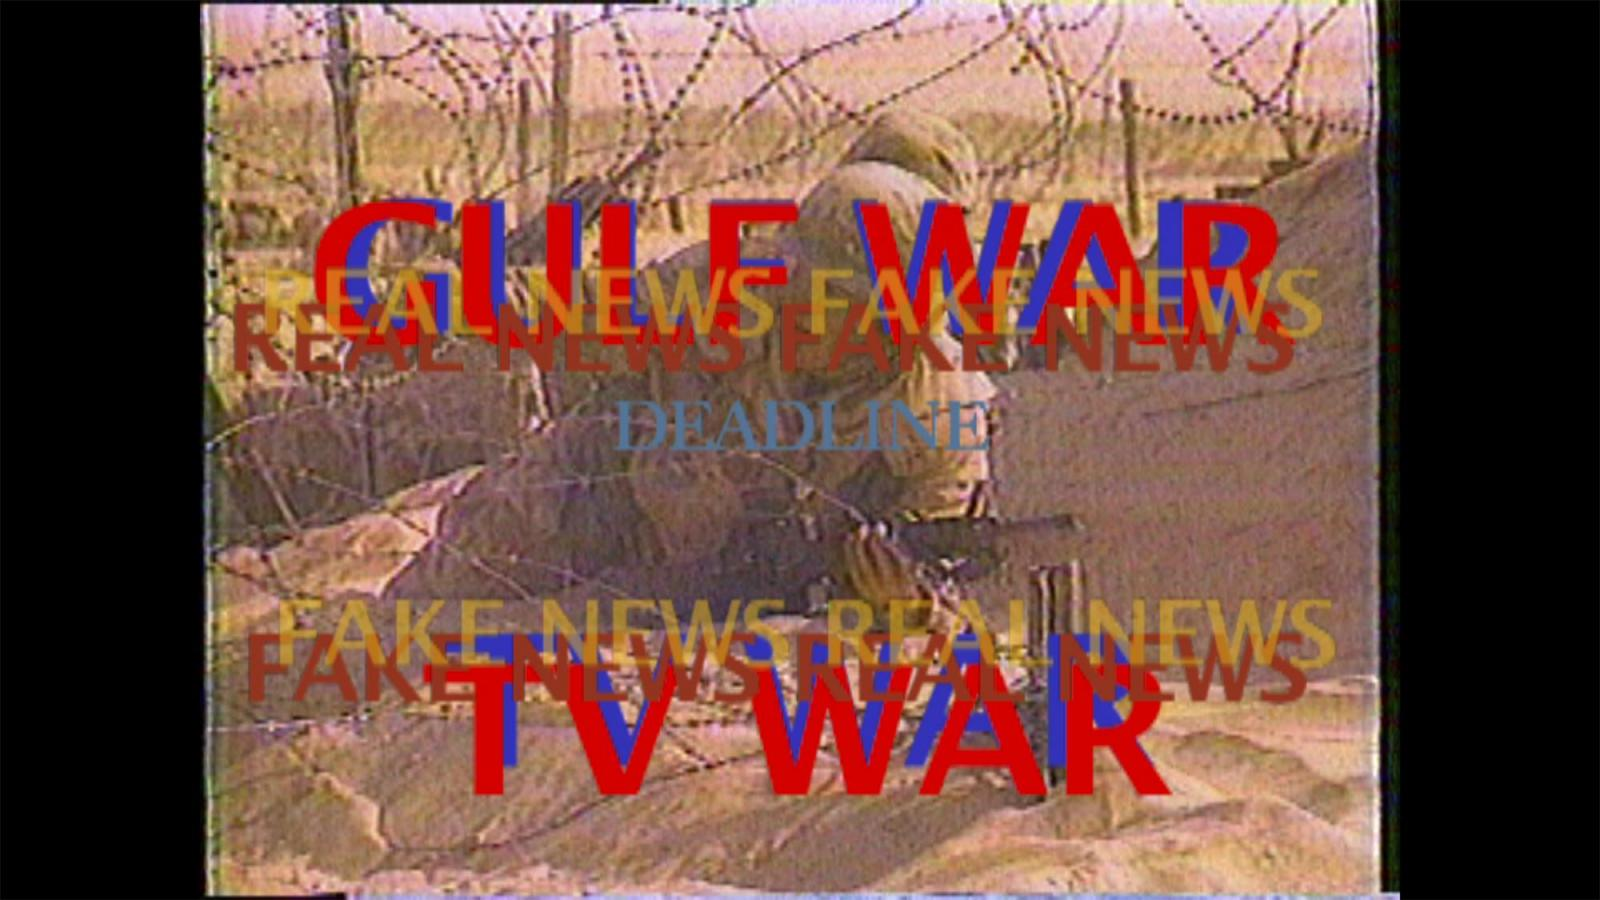 Michel Auder /Gulf War TV War /(1991, edited 2007)